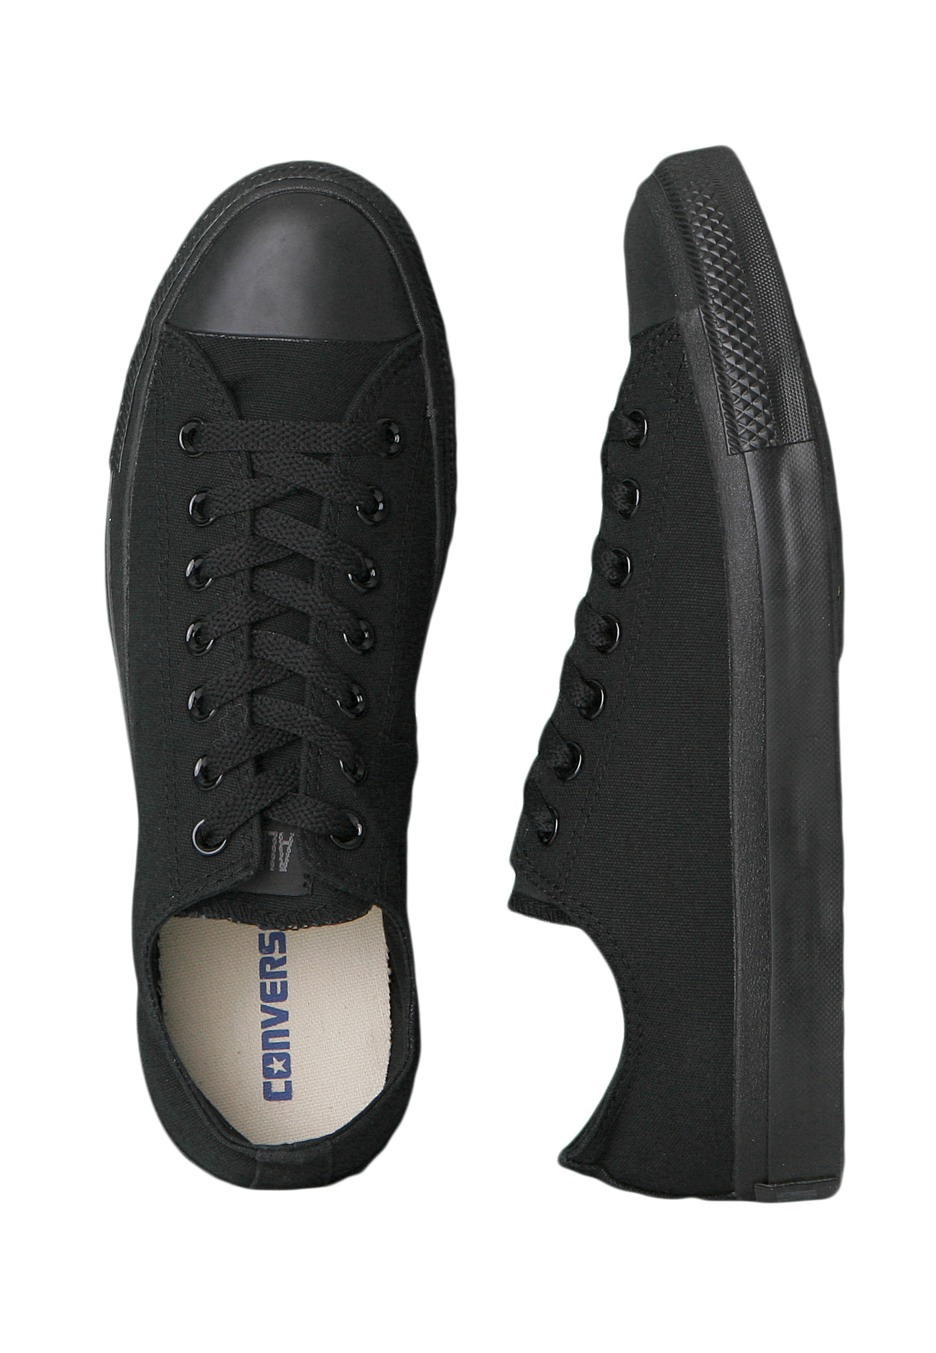 Converse - Chuck Taylor All Star Ox Black Monochrome - Shoes -  Impericon.com UK b614877b7